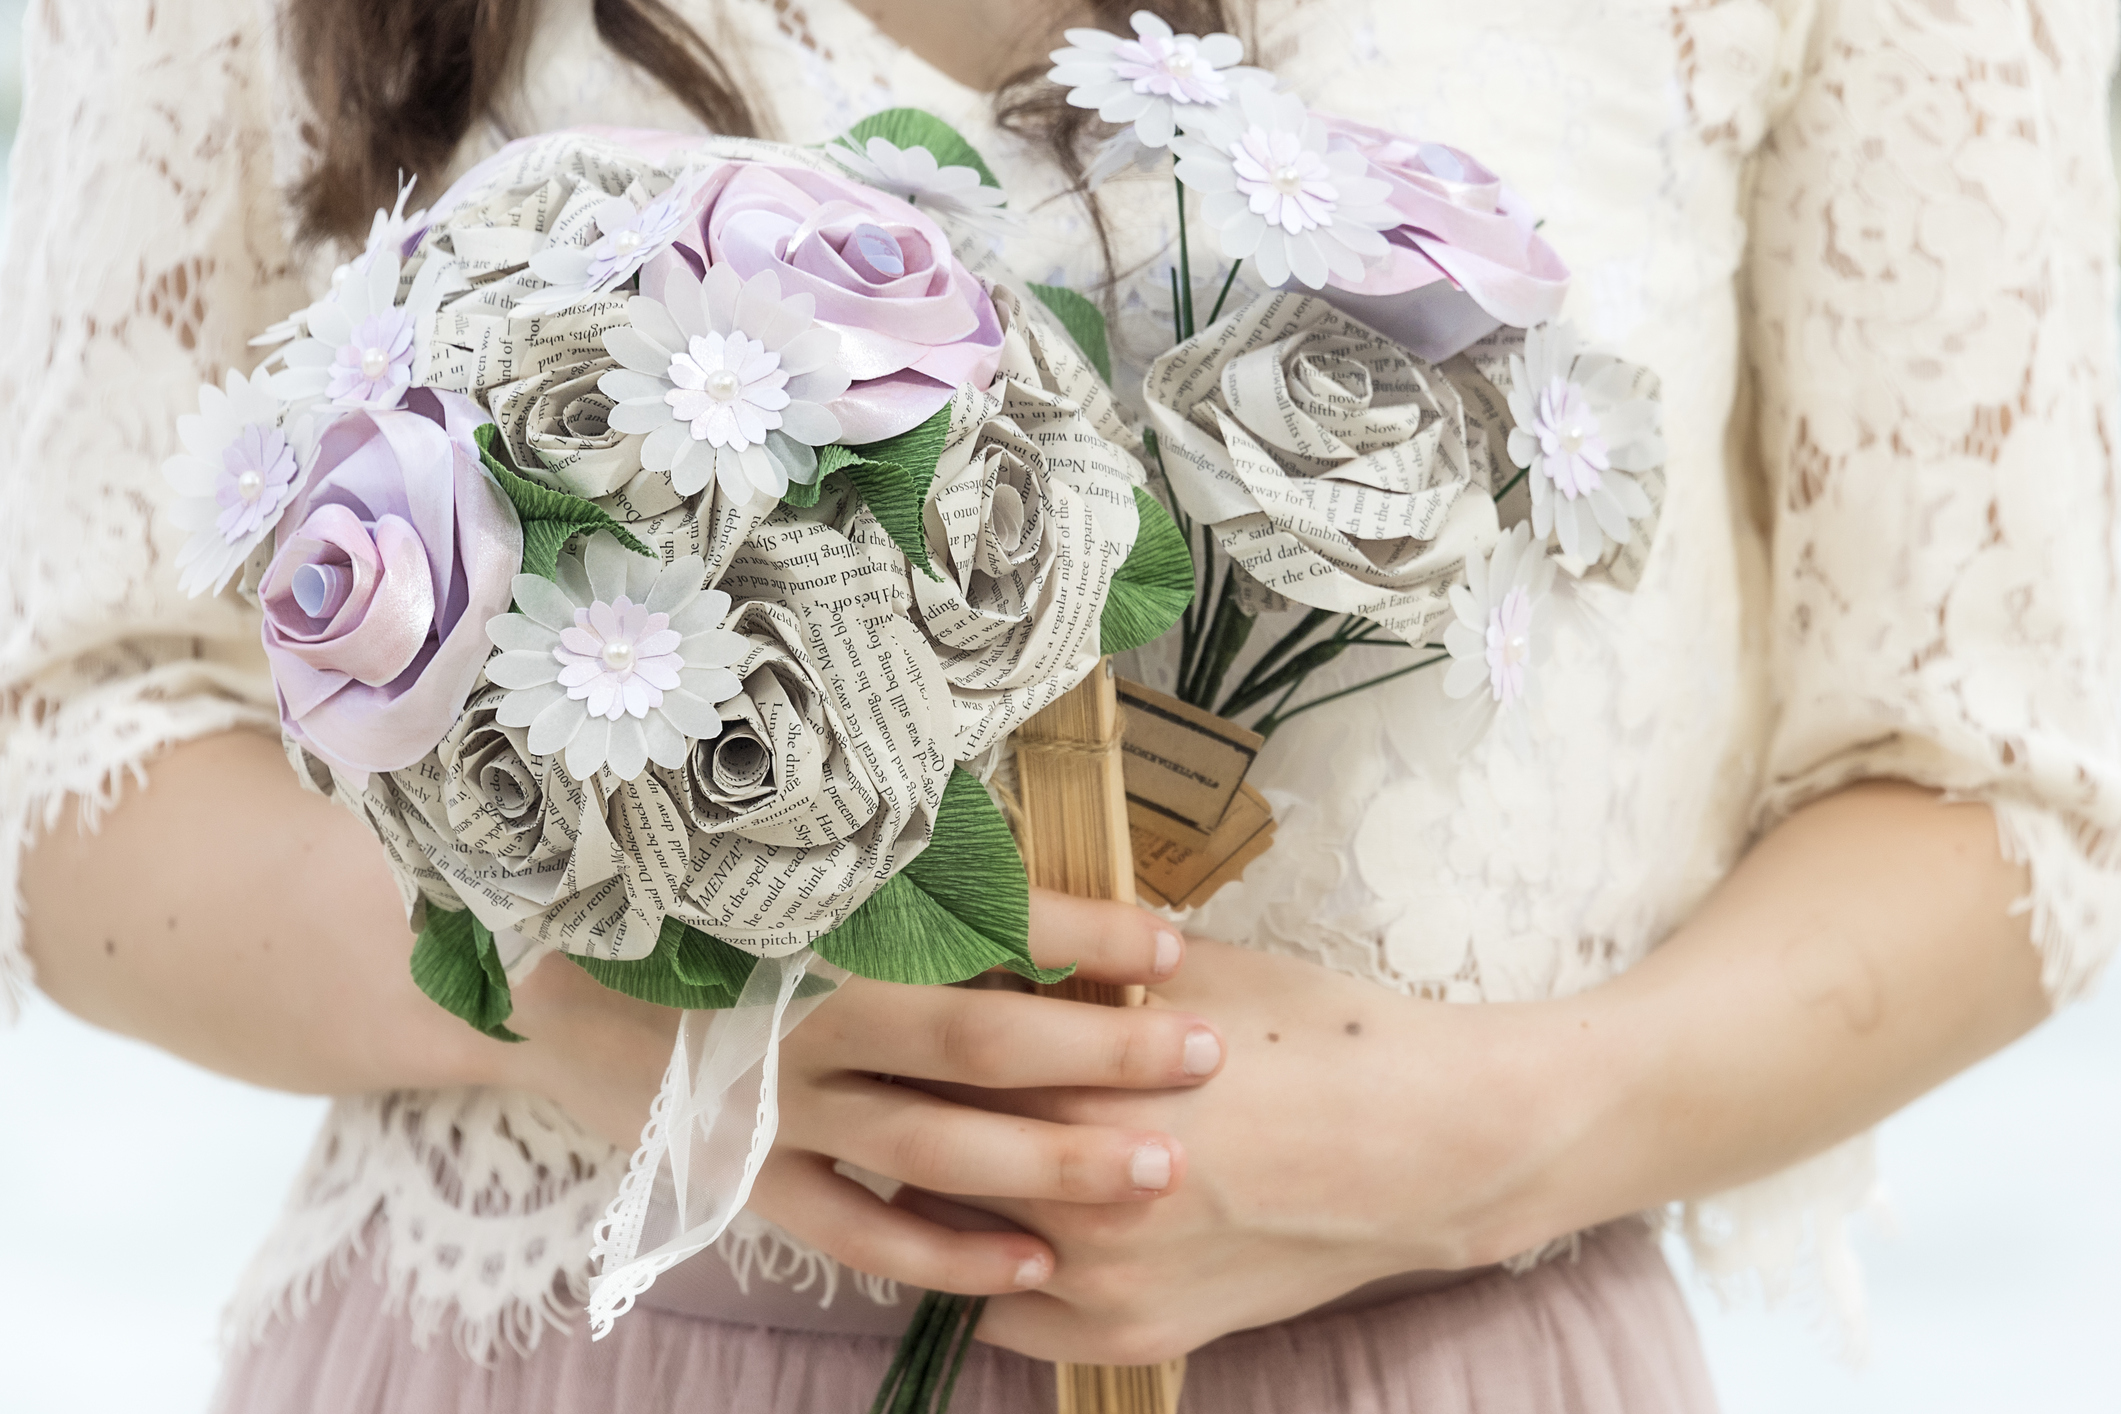 12 alternative bridal bouquets if you don't want fresh flowers